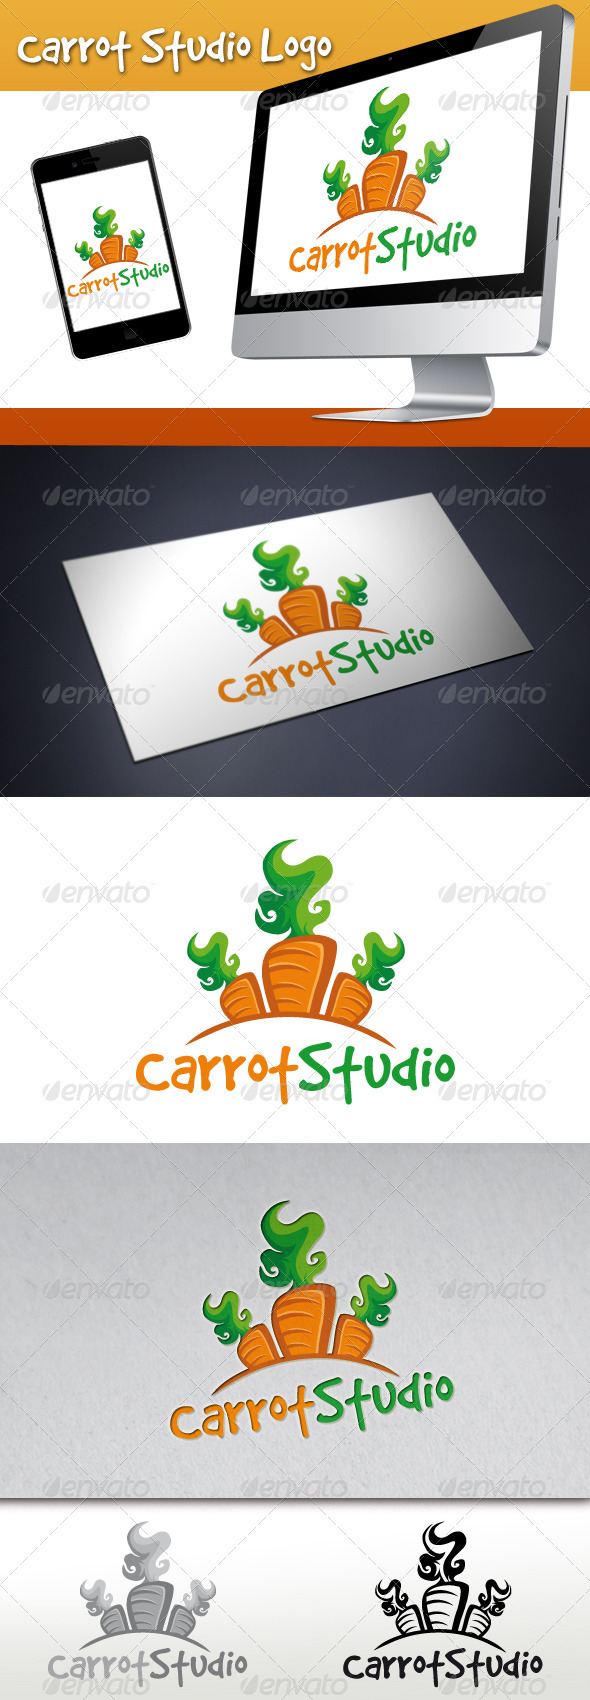 Carrot Studio Logo